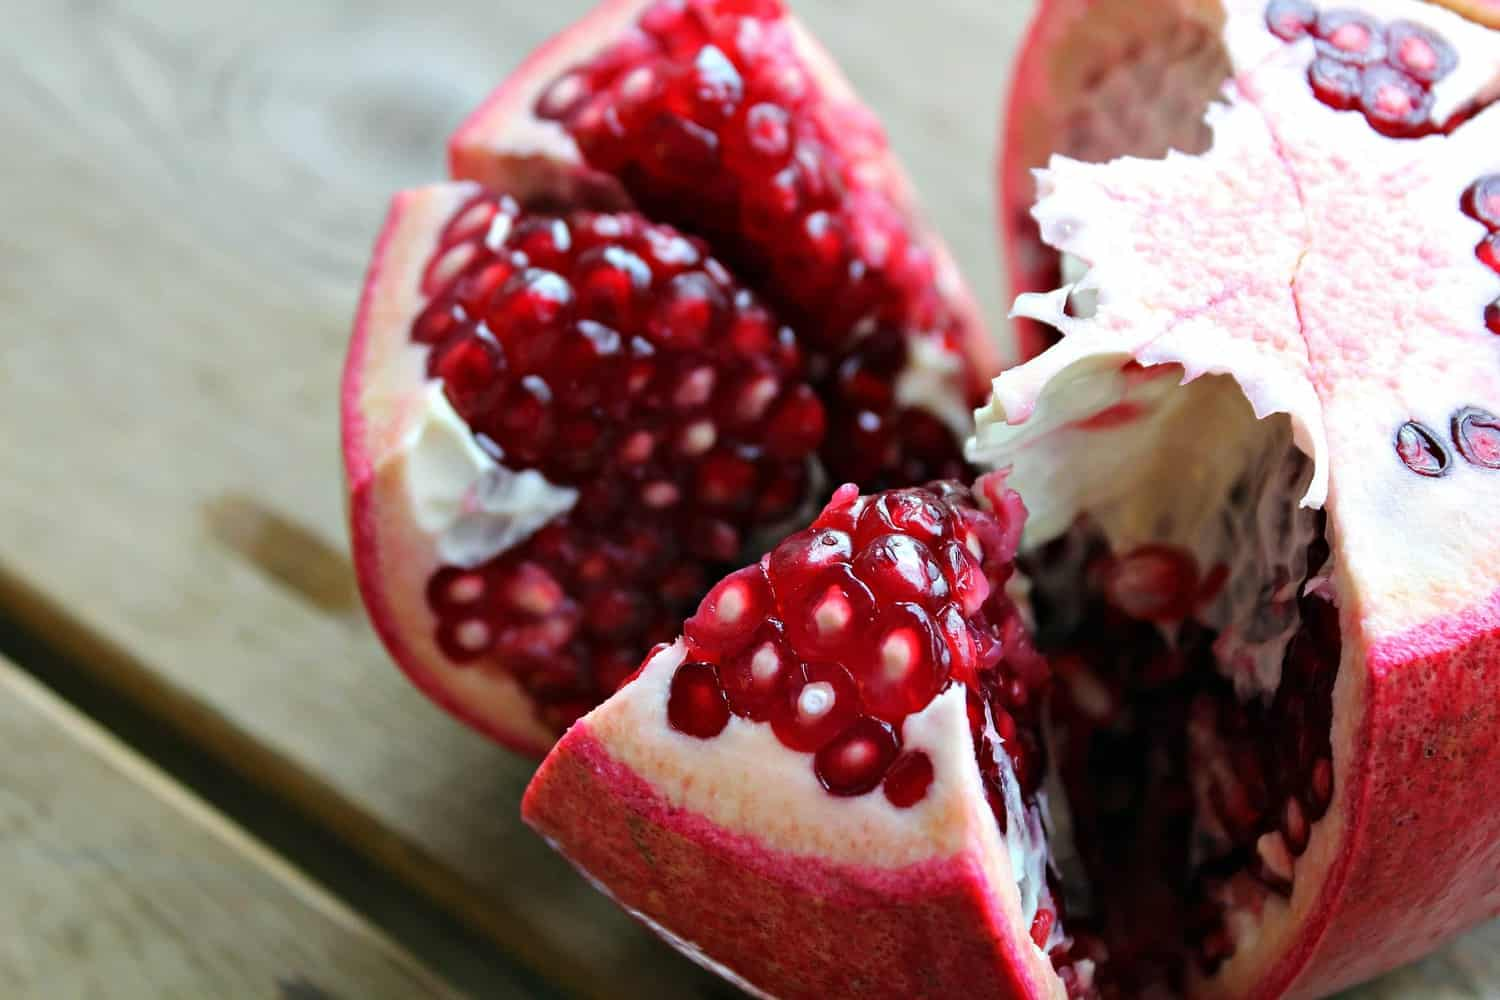 Fresh pomegranate cut open to show inside.